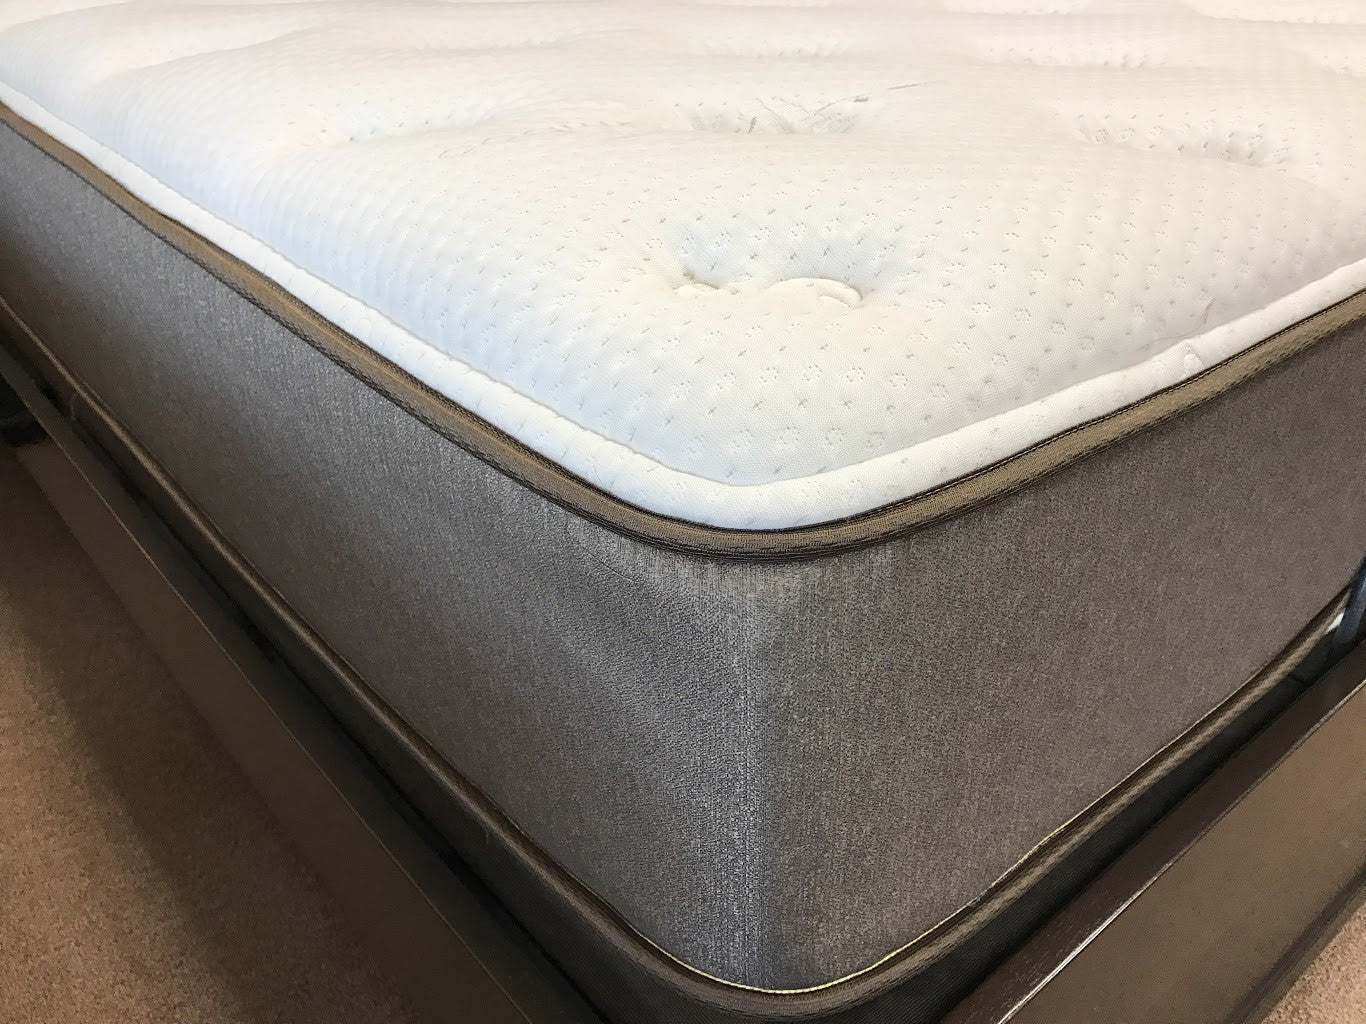 mattress blvd item t corsicana firm double full sided products corvelle ds number set